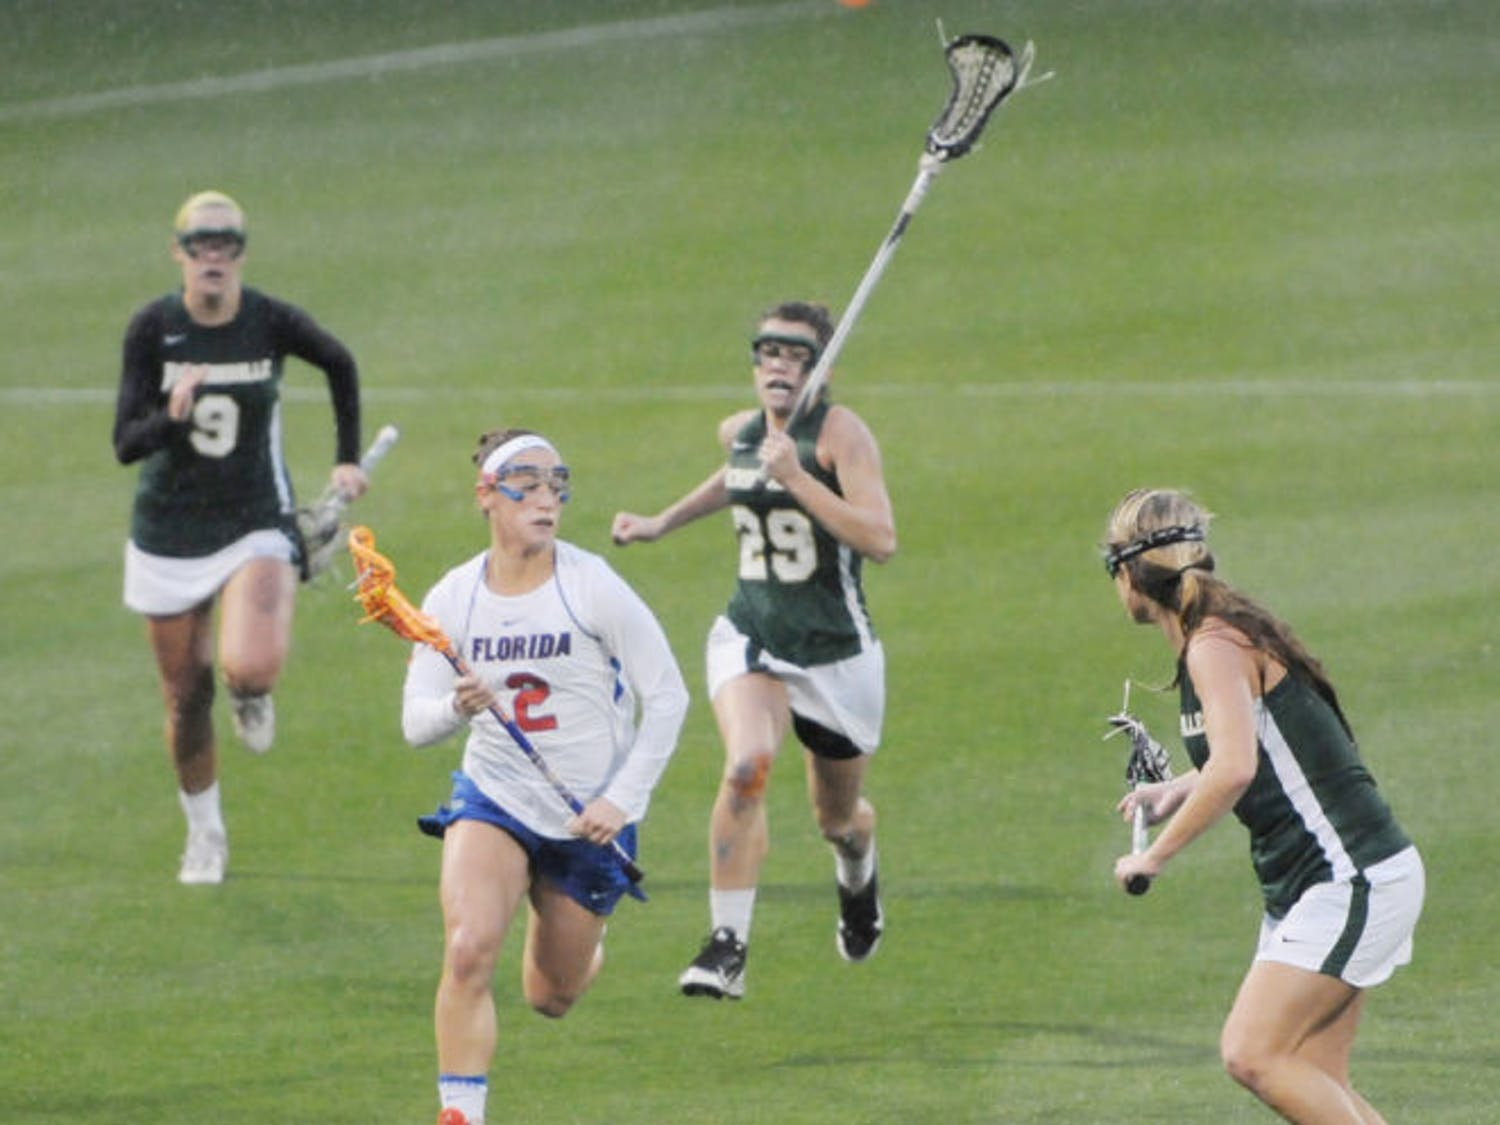 Sammi Burgess (2) drives to the net during Florida's 21-5 win against Jacksonville on Feb. 12 at Donald R. Dizney Stadium. Burgess chose UF over several different schools.